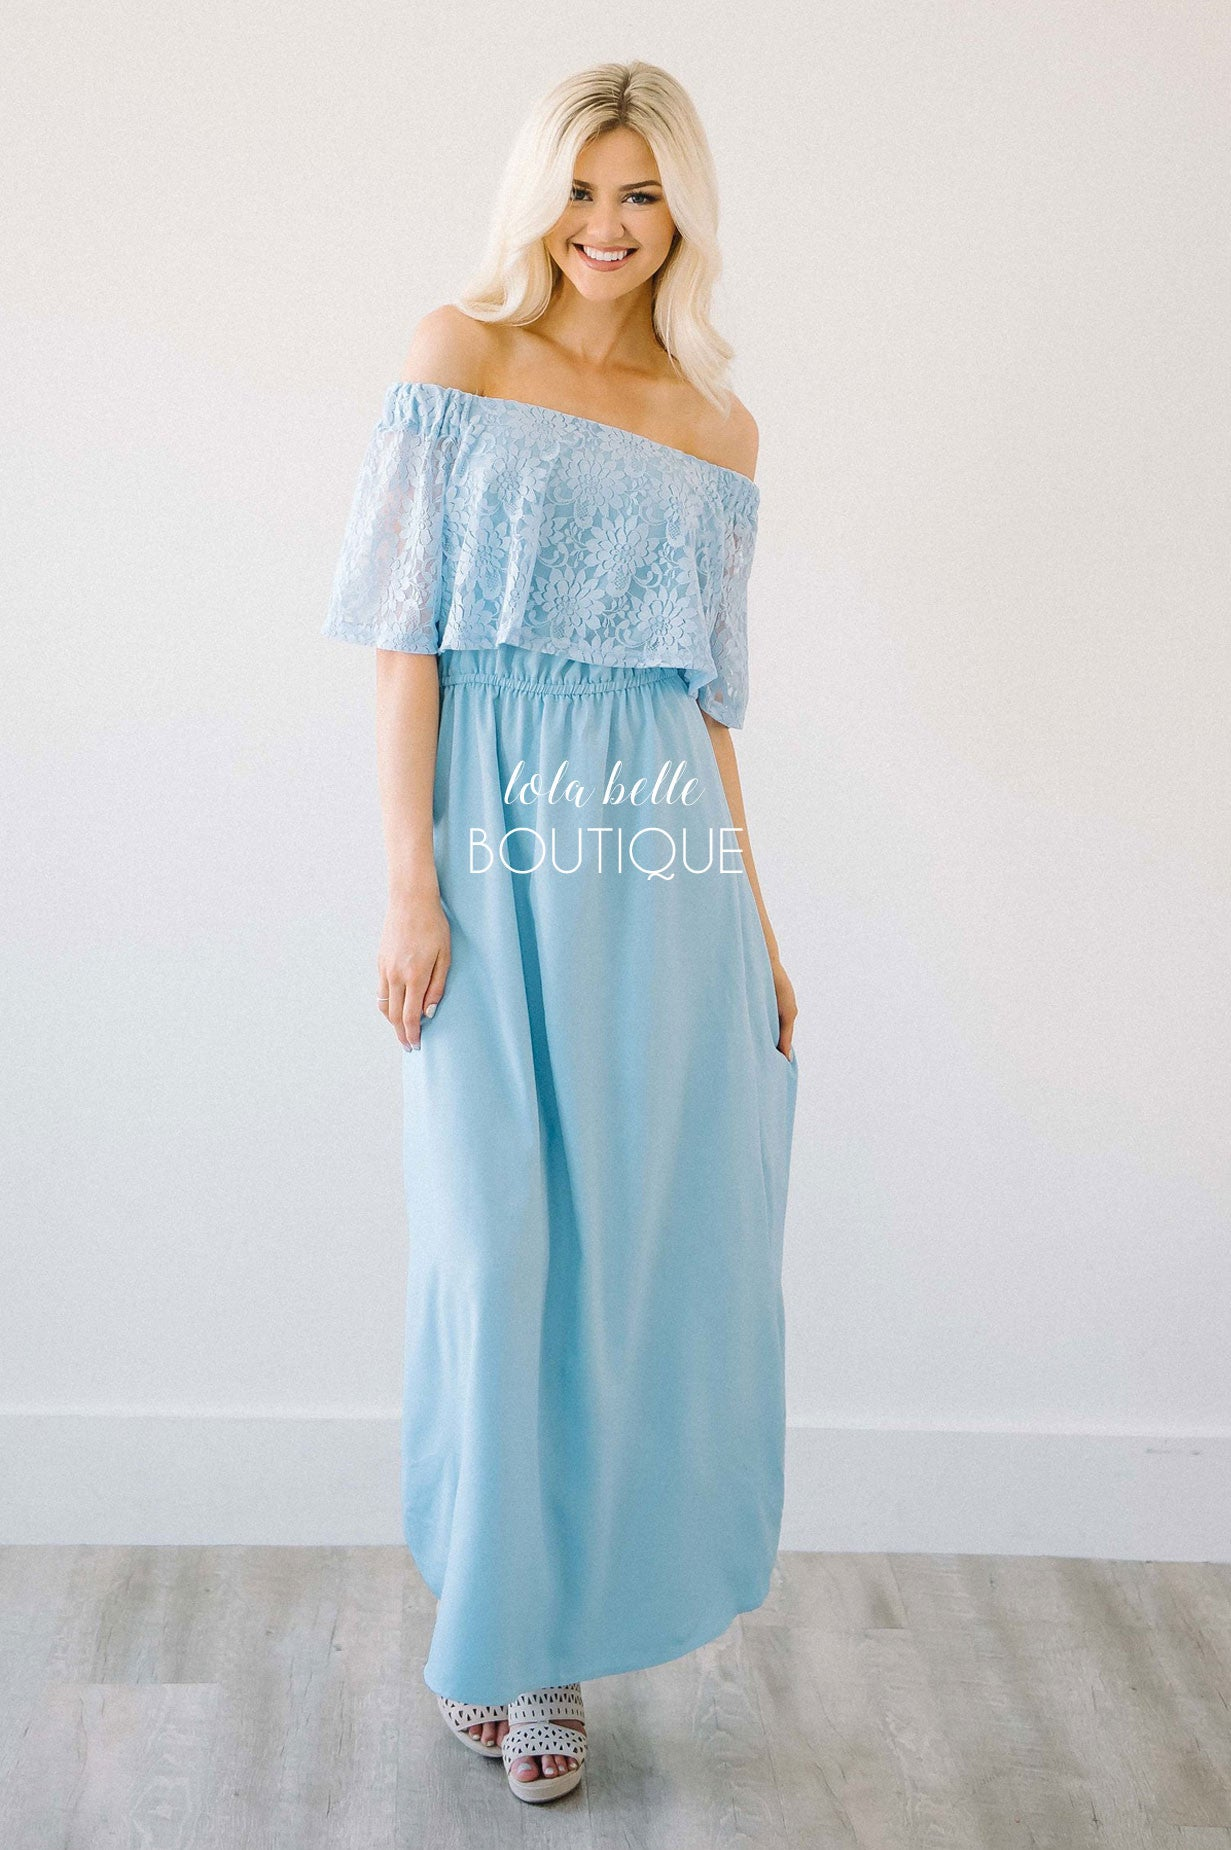 Womens Maxi Dresses Summer Dresses Cute Tops Maxi Skirts – Shop Lola ...